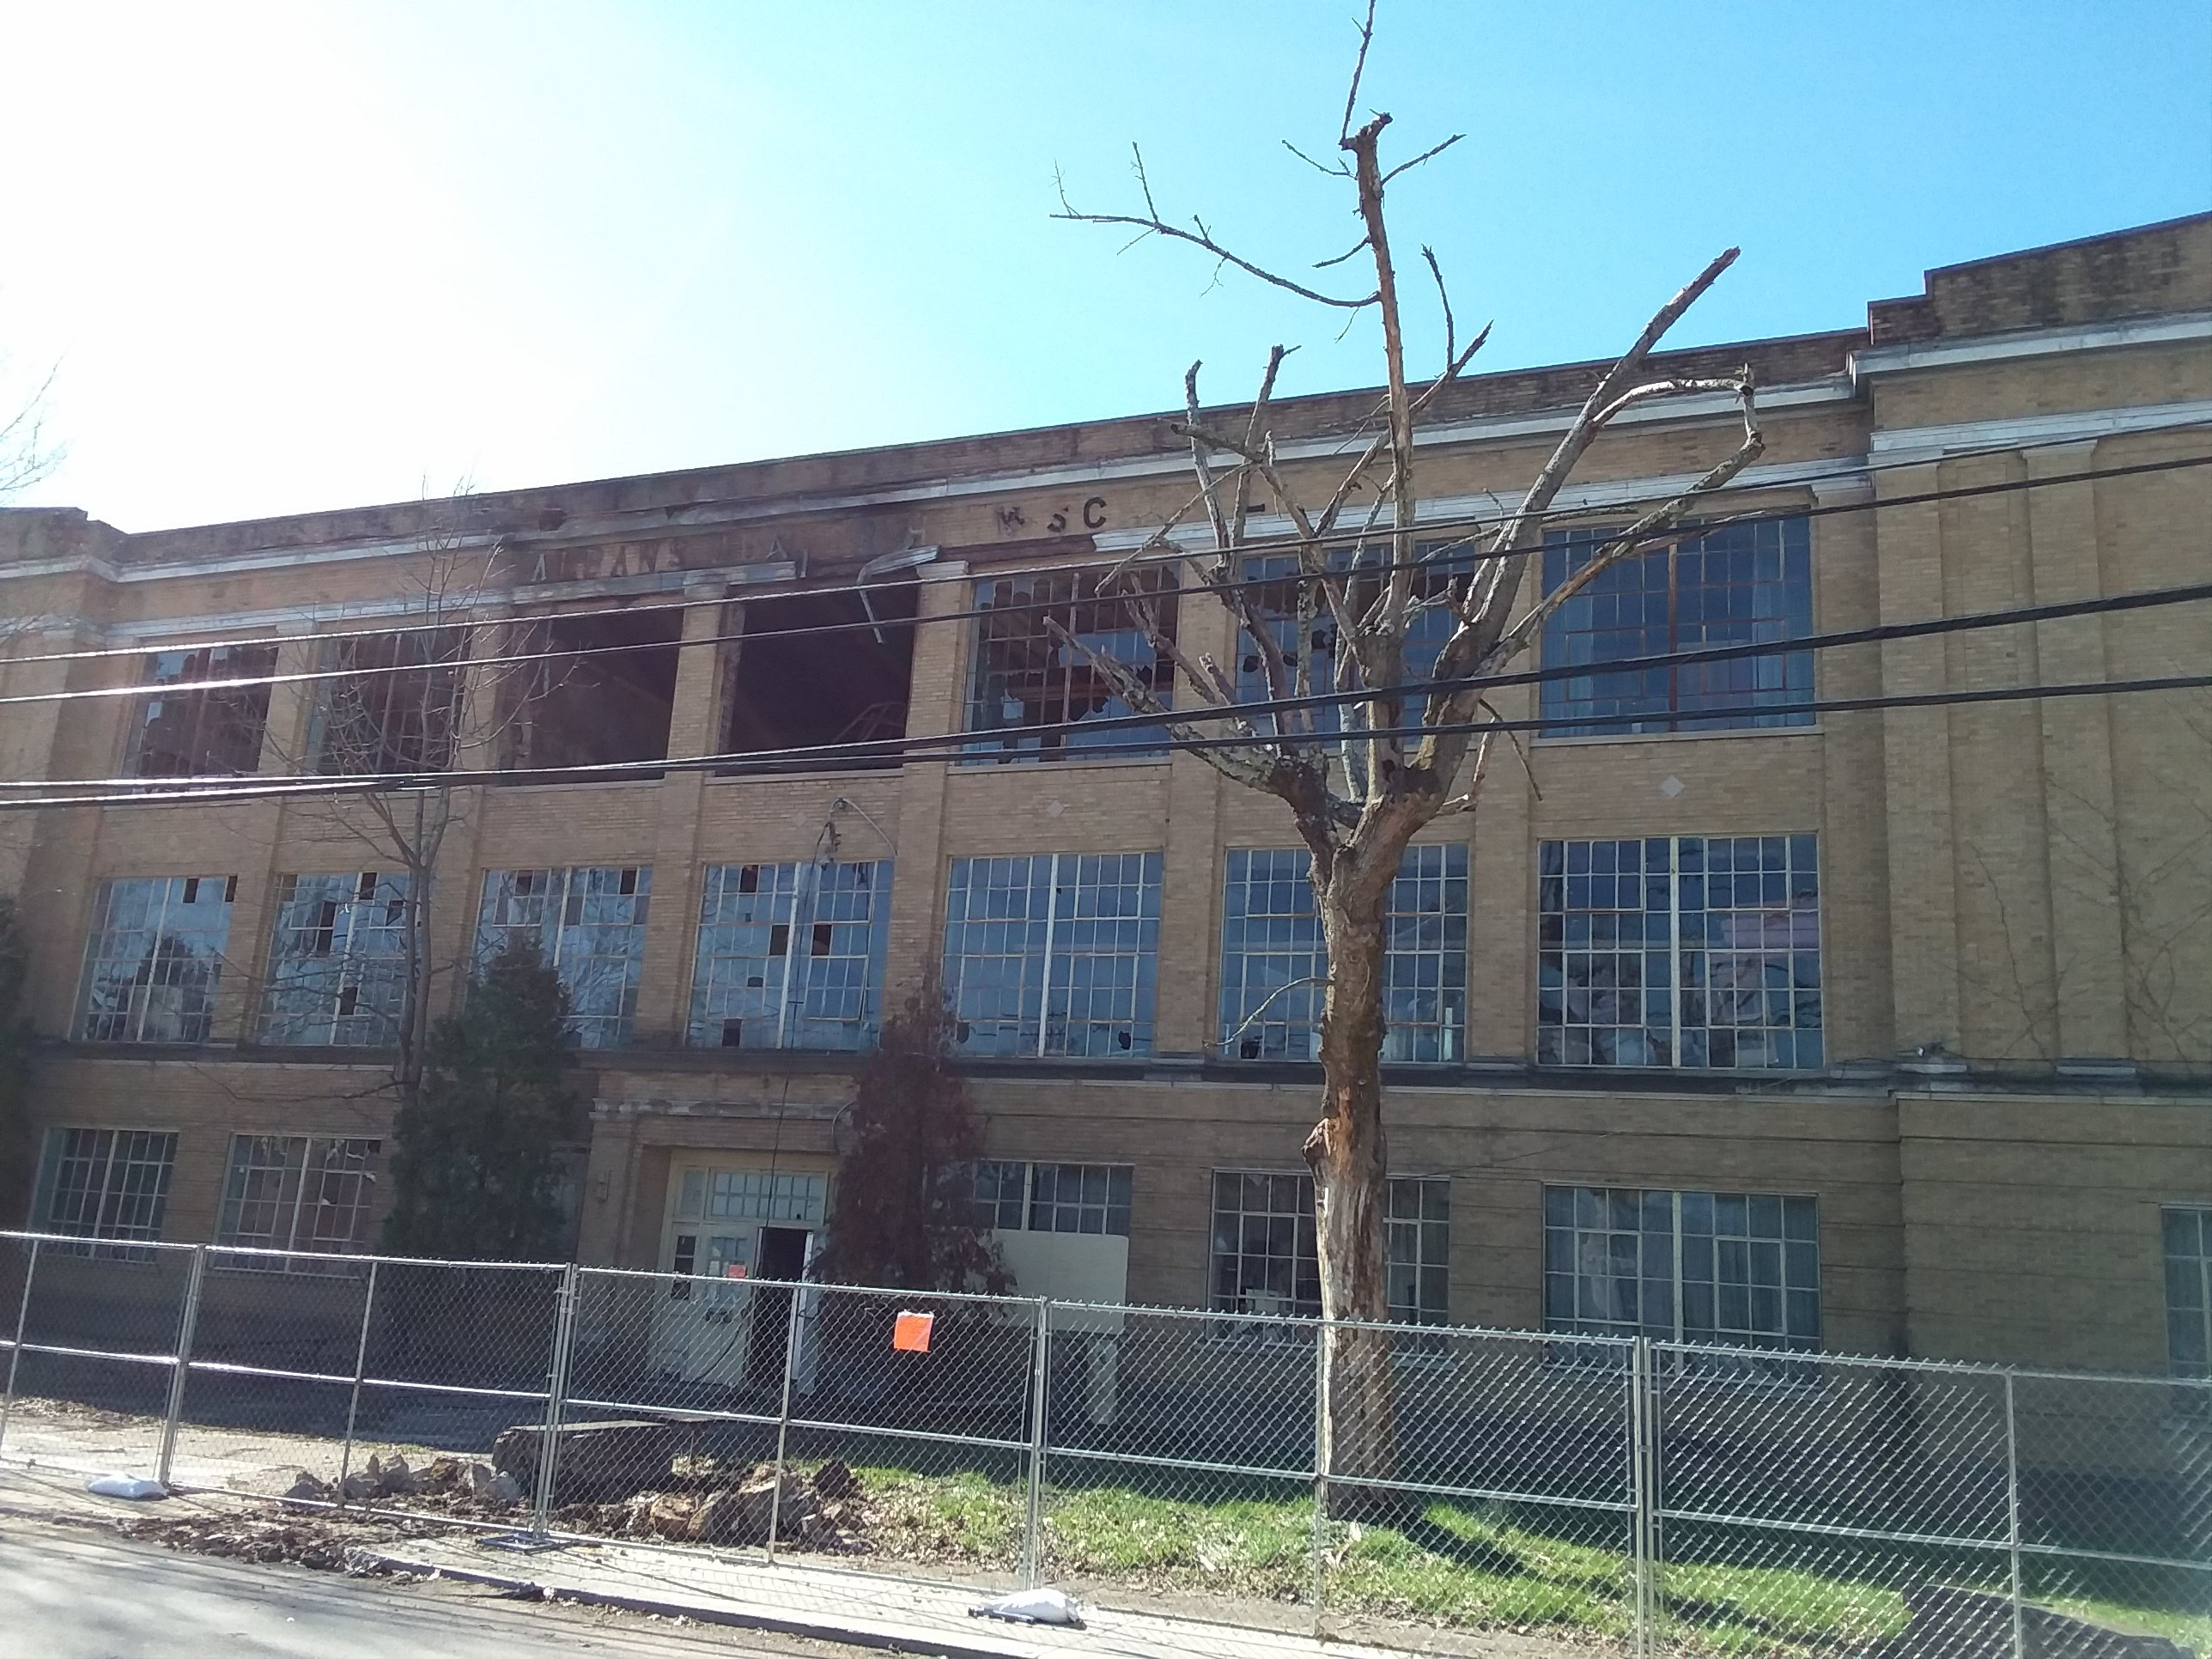 Old Jr. High School (current storage and warehouse) was severely burnt in March 2018.